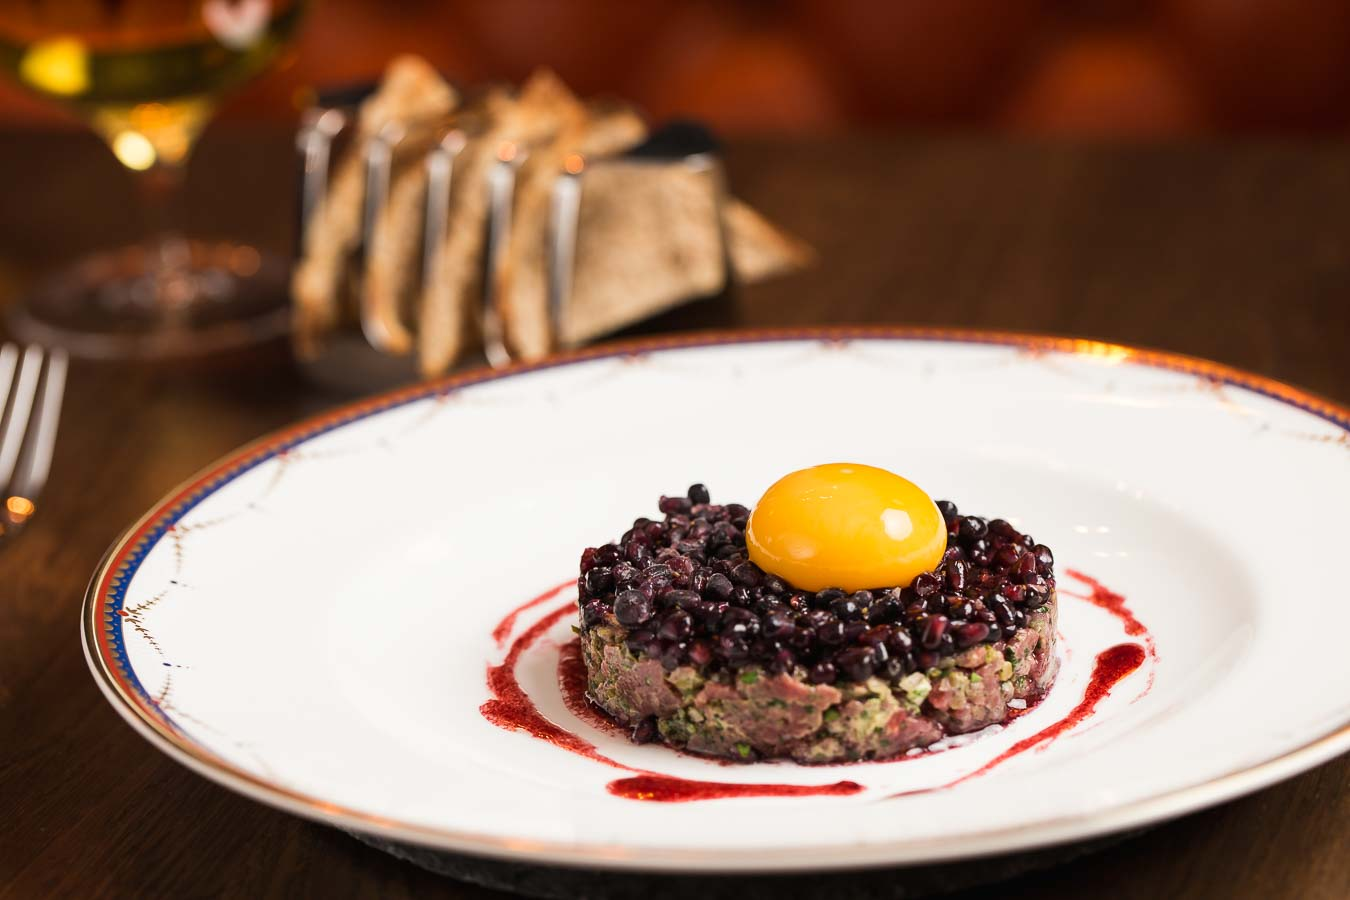 Gastro Pub style steak tartare, formed in a circle, topped with blackcurrants and the yoke of a hens egg on top. In the background is a wine glass and artisan toast crackers in a toast rack